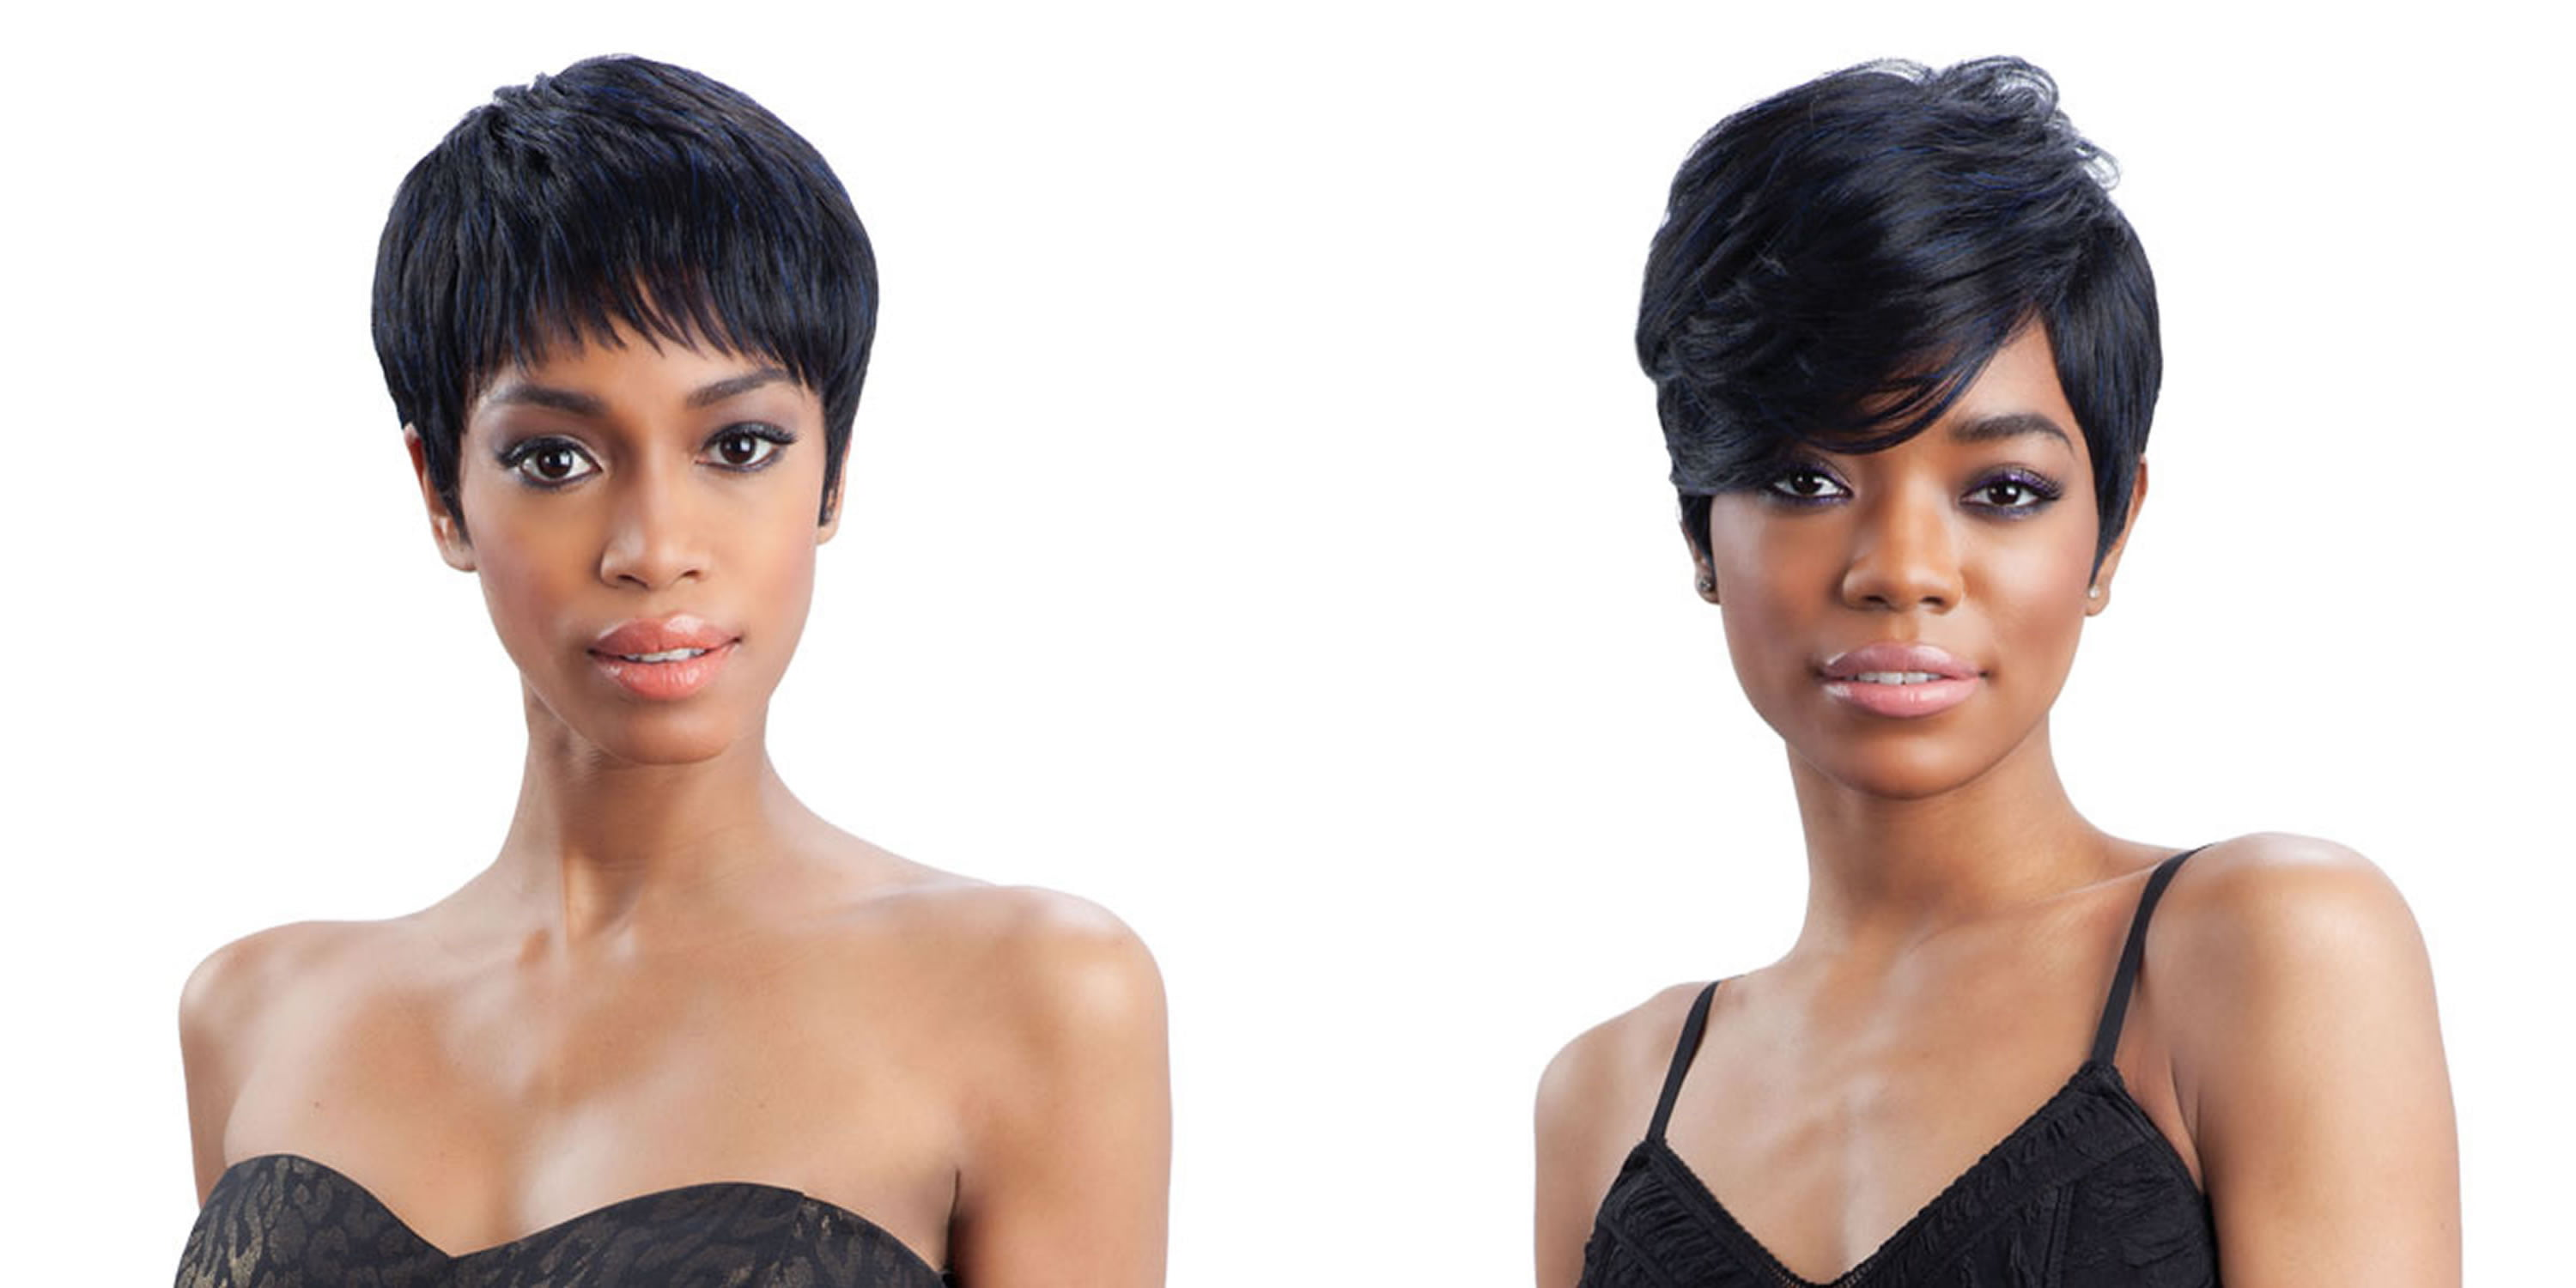 Pixie Short Haircuts and Hair Colors for Black Women - Best Short Hair Images for 2018-2019